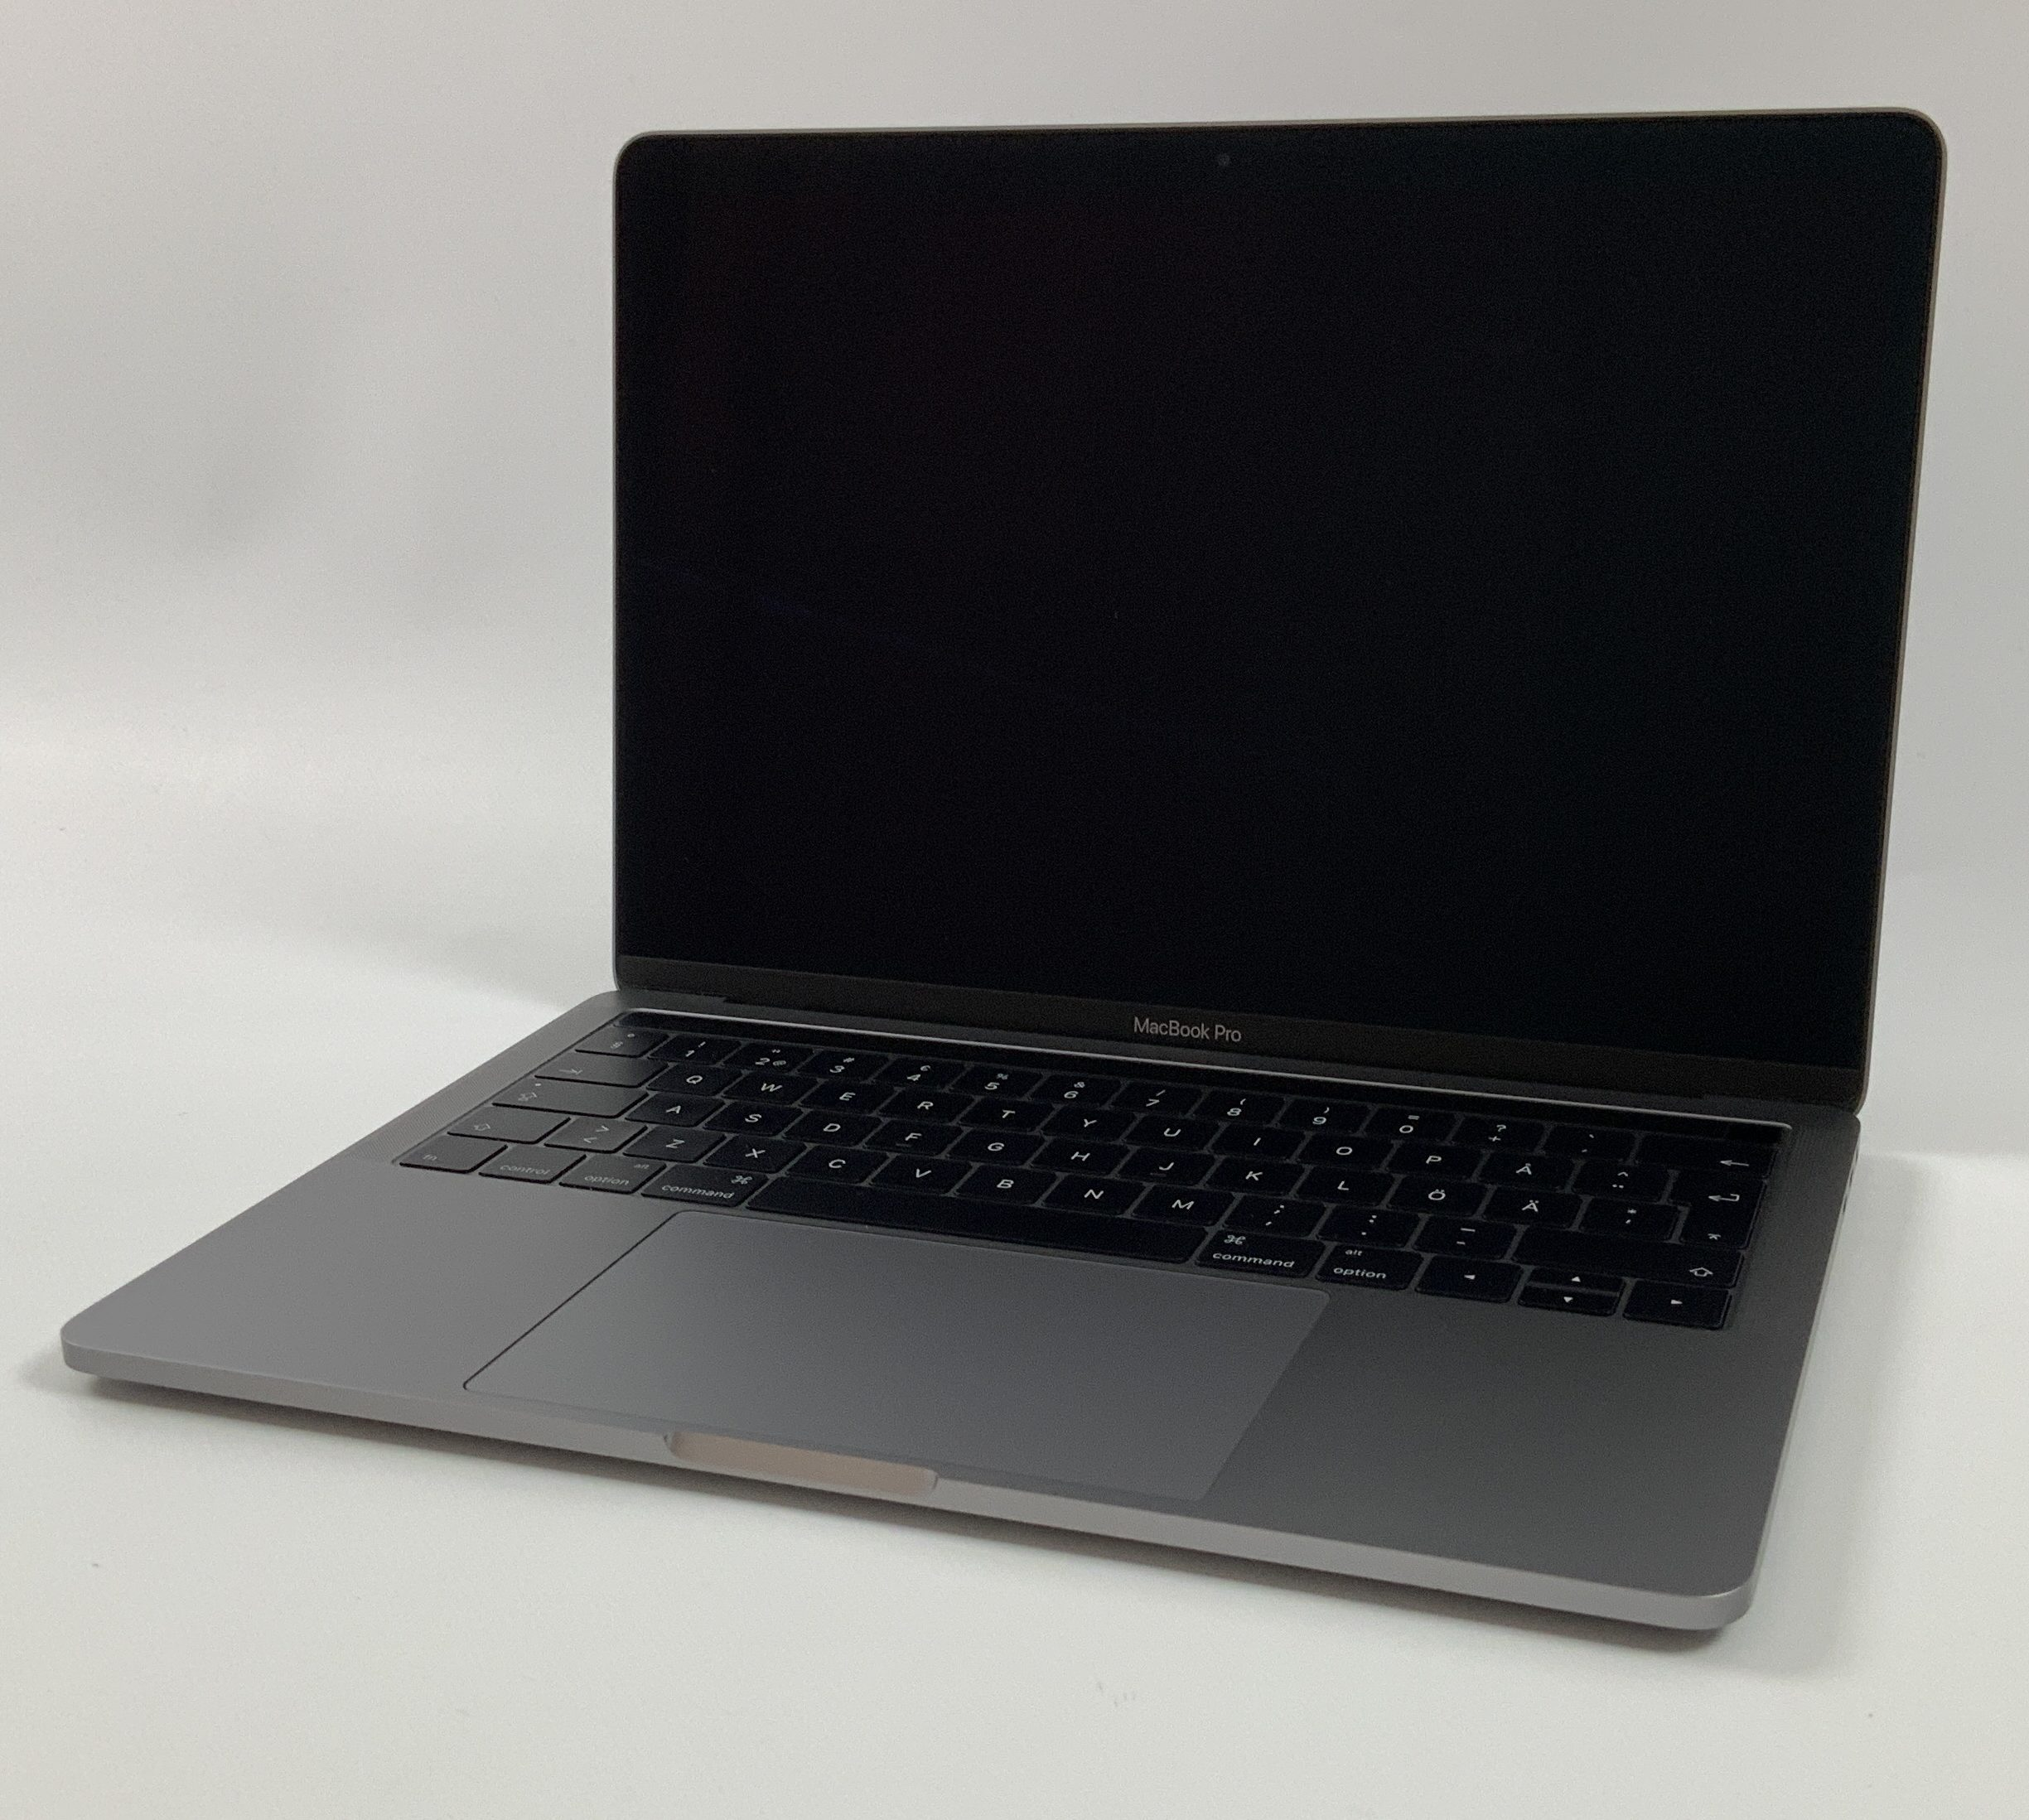 "MacBook Pro 13"" 4TBT Late 2016 (Intel Core i5 2.9 GHz 8 GB RAM 512 GB SSD), Space Gray, Intel Core i5 2.9 GHz, 8 GB RAM, 512 GB SSD, Afbeelding 1"